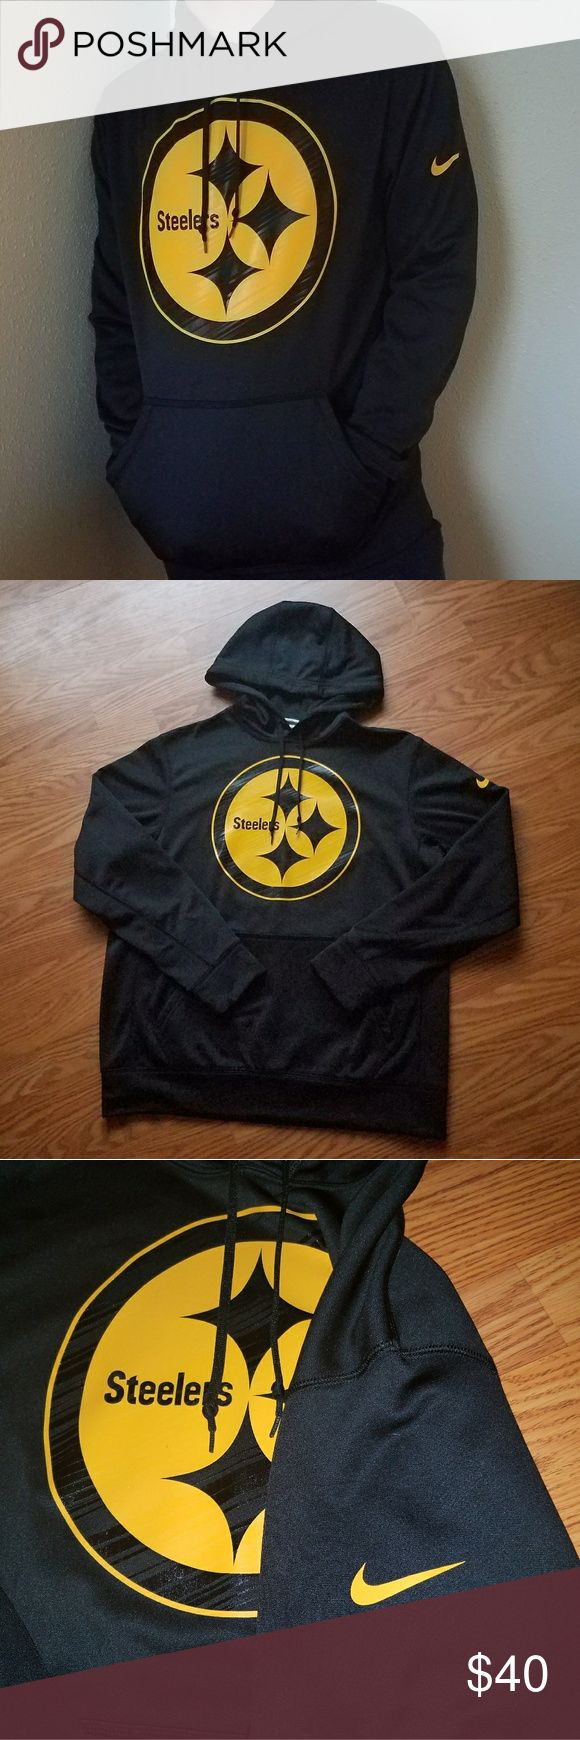 NEW Steelers Nike Thermafit🏈✅✴ ✴NWOT and No flaws! NFL Nike Thermafit Hoodie, lined with soft fleece and moisture wick fabric outside (color in pics exact) ✴Size medium and drawstring hood, loose fitting ✴Bought for $100 from NFL Shop, feel free to ask any questions or send an offer using the offer button! ✴Bundle for 10% off! Nike Jackets & Coats Performance Jackets